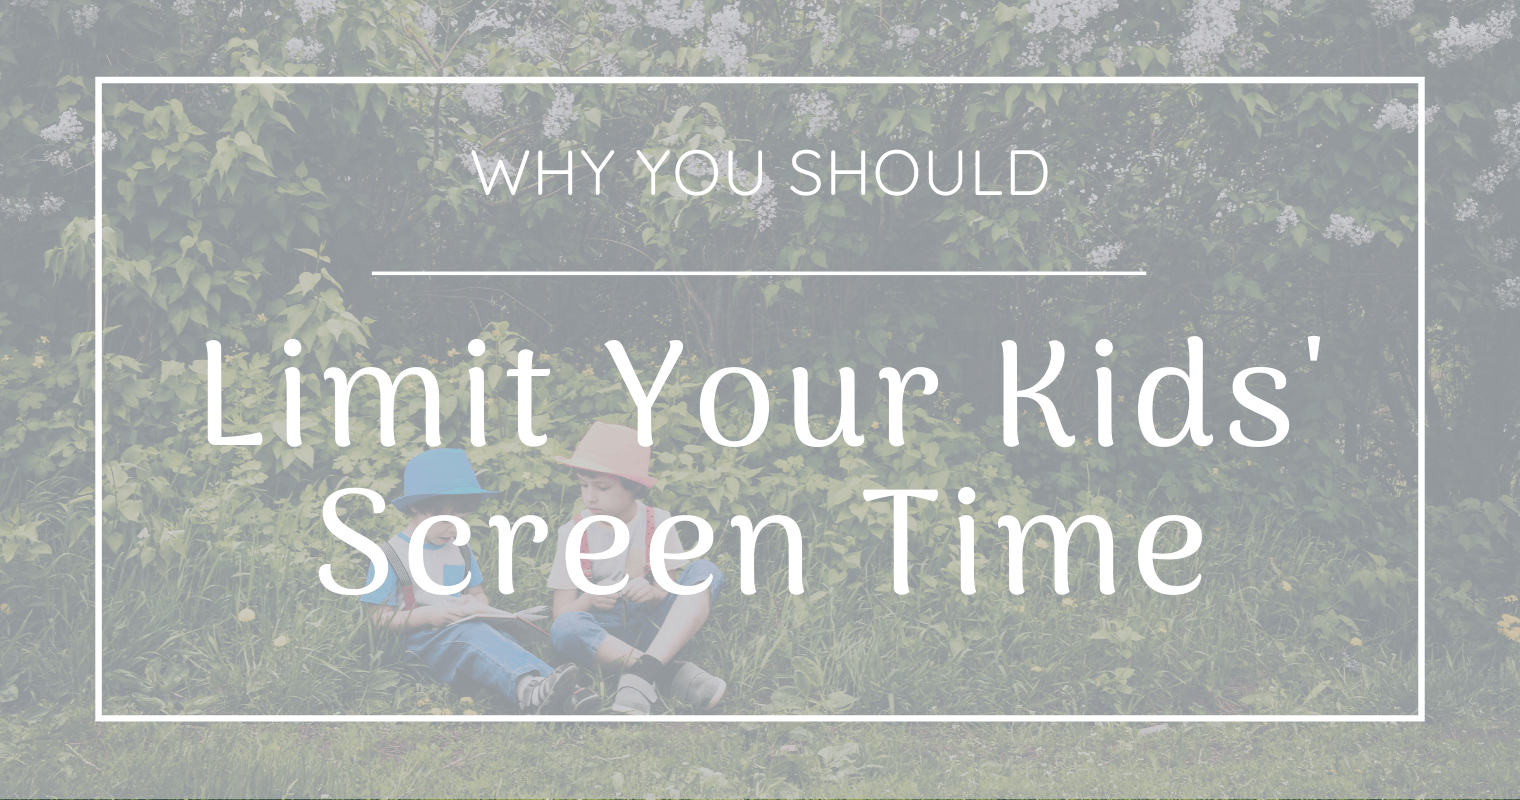 5 powerful reasons to limit your kids' screen time